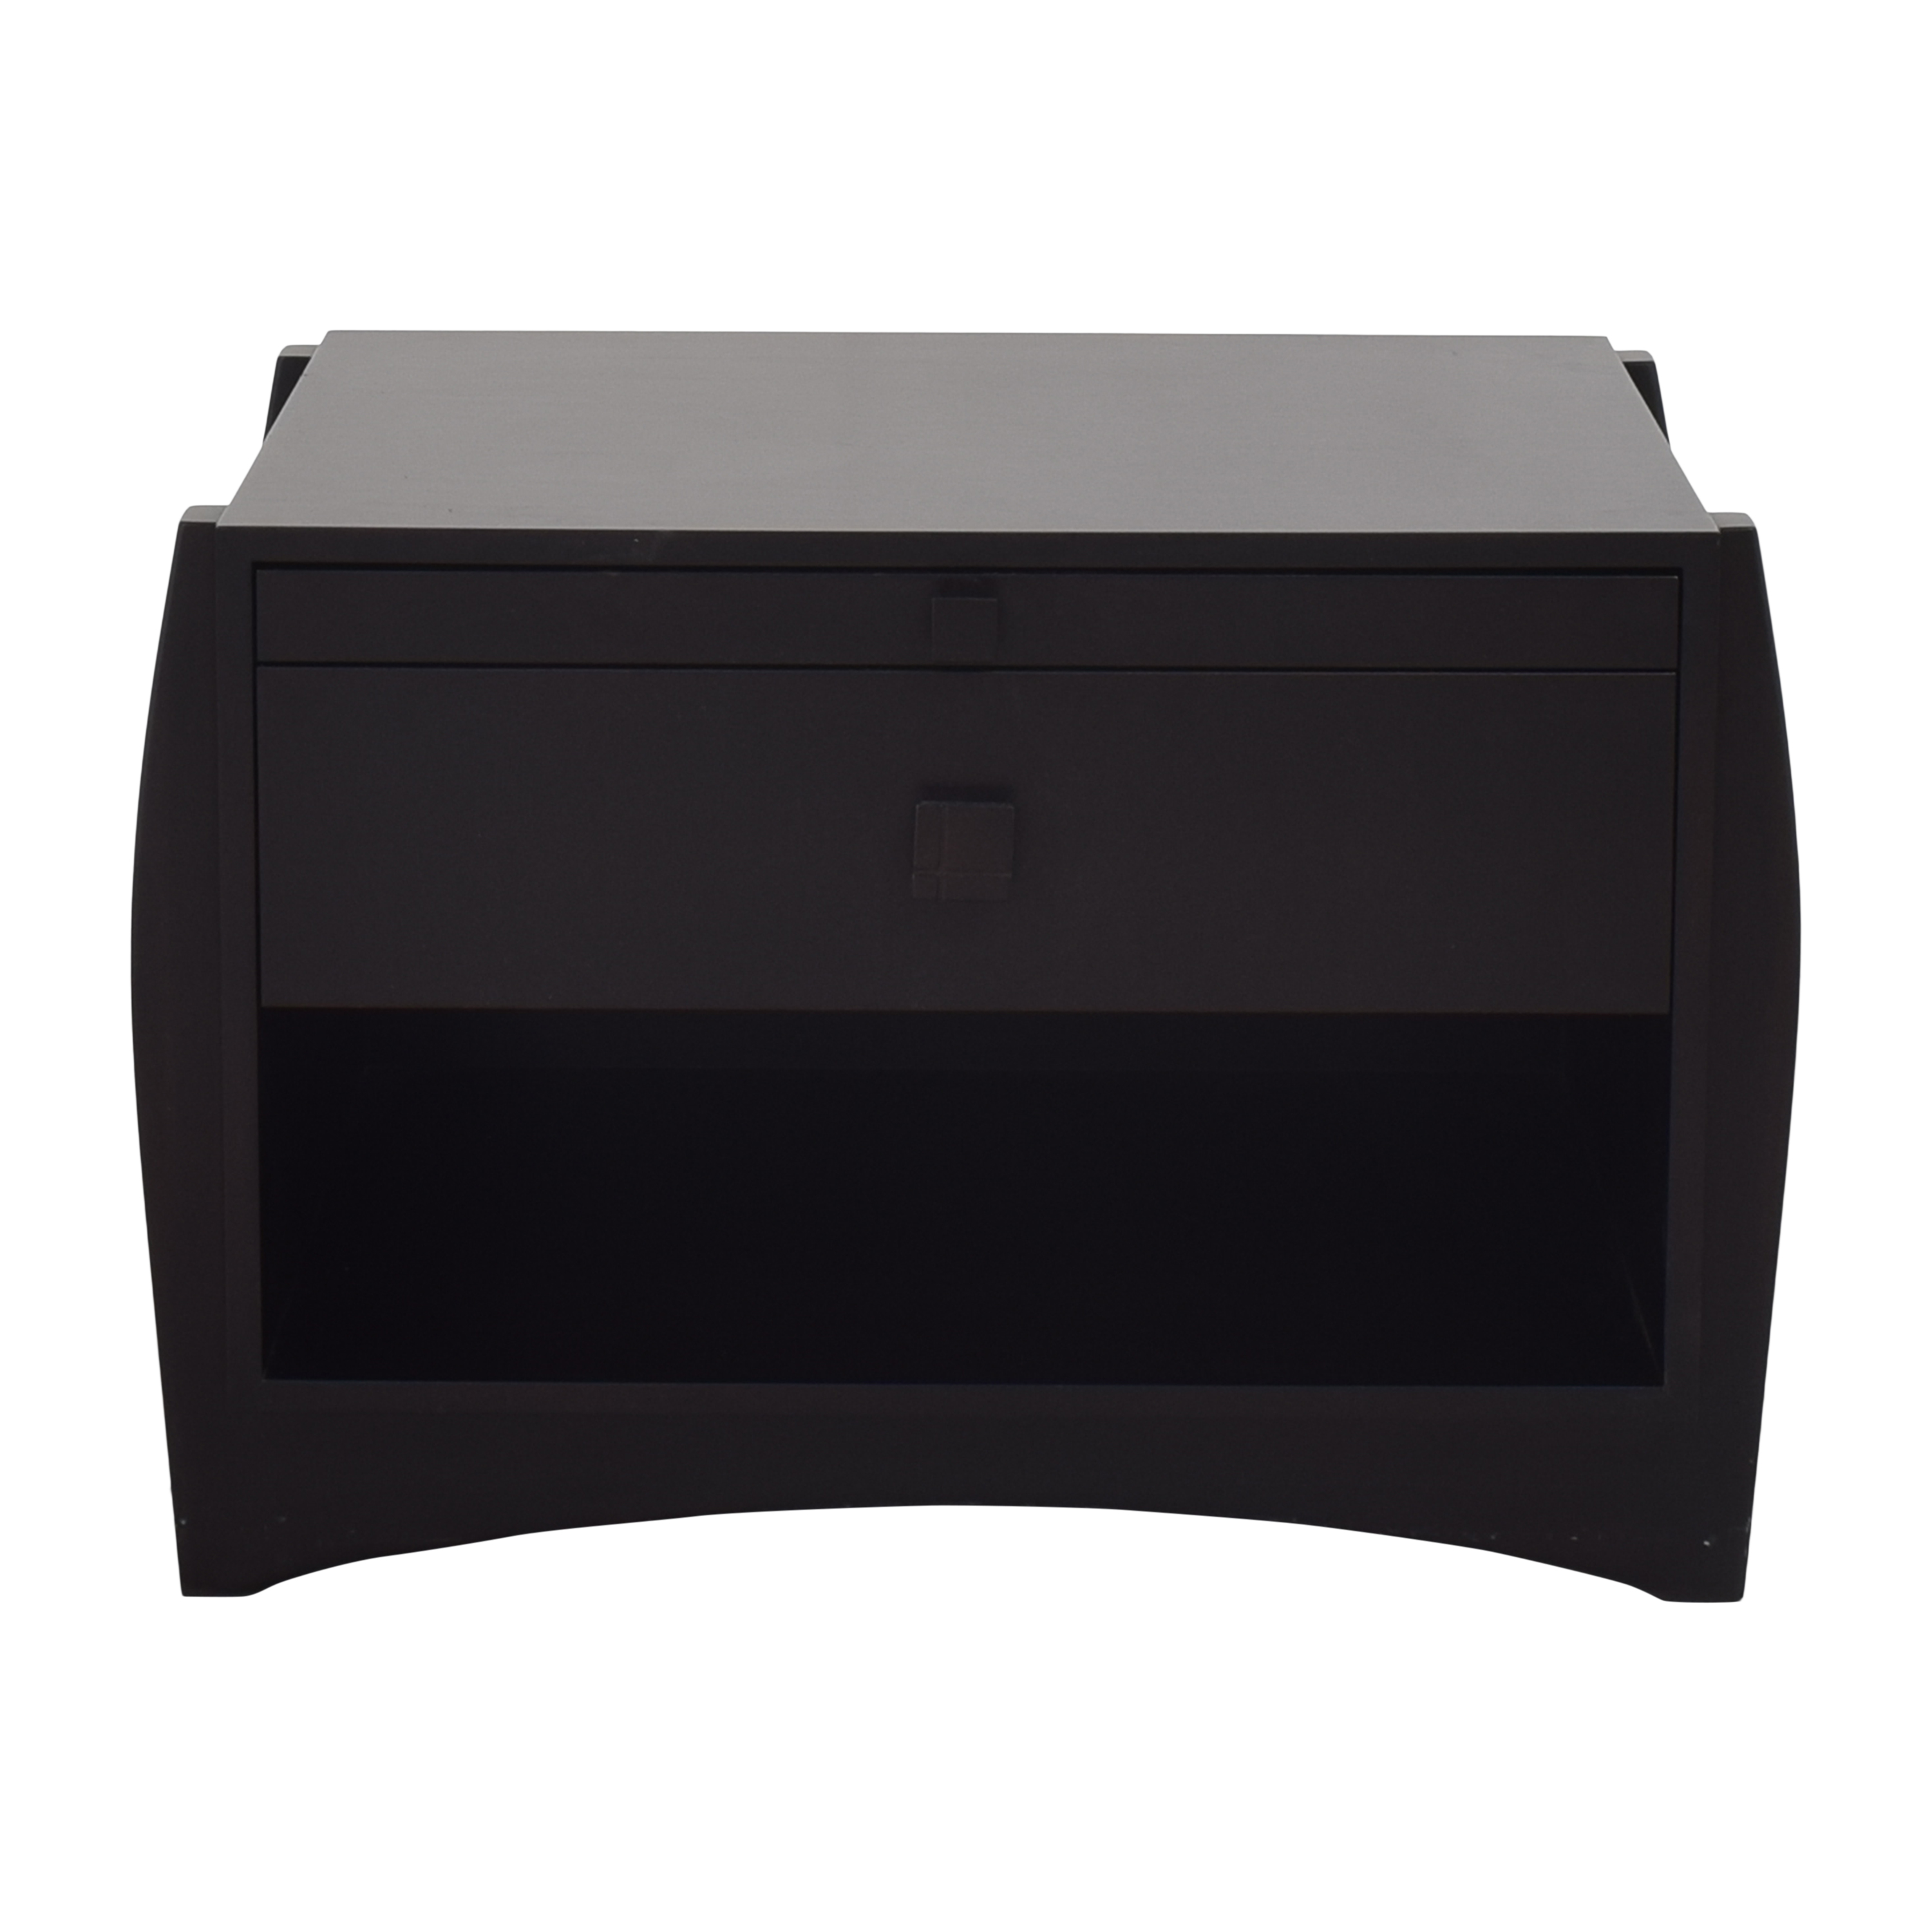 Single Drawer Nightstand with Pull-Out Tray coupon